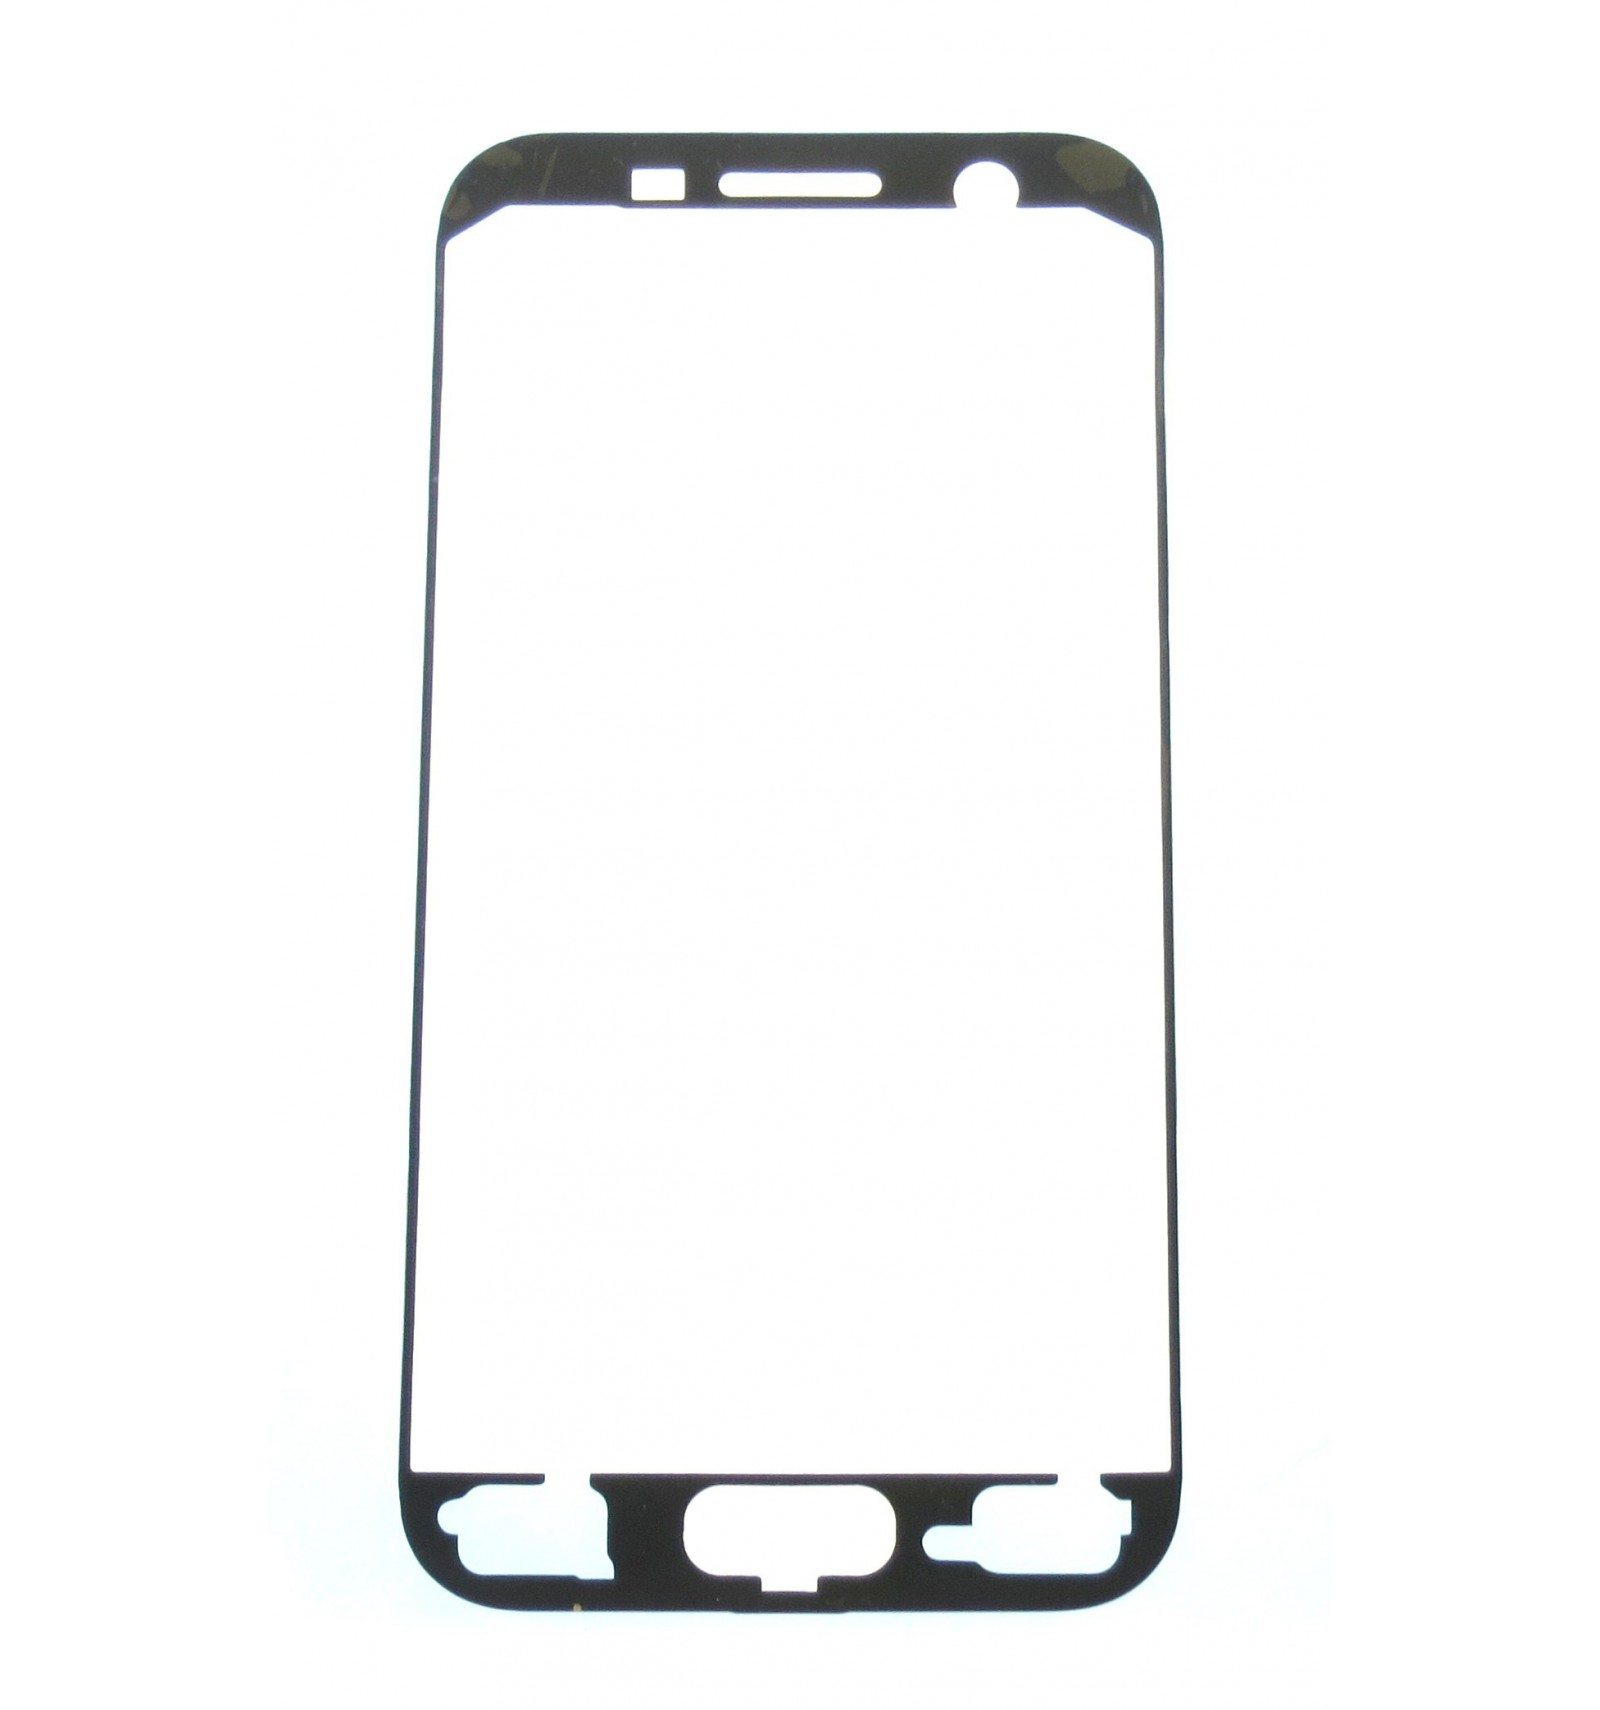 LCD adhesive sticker original for Samsung Galaxy A3 (2017